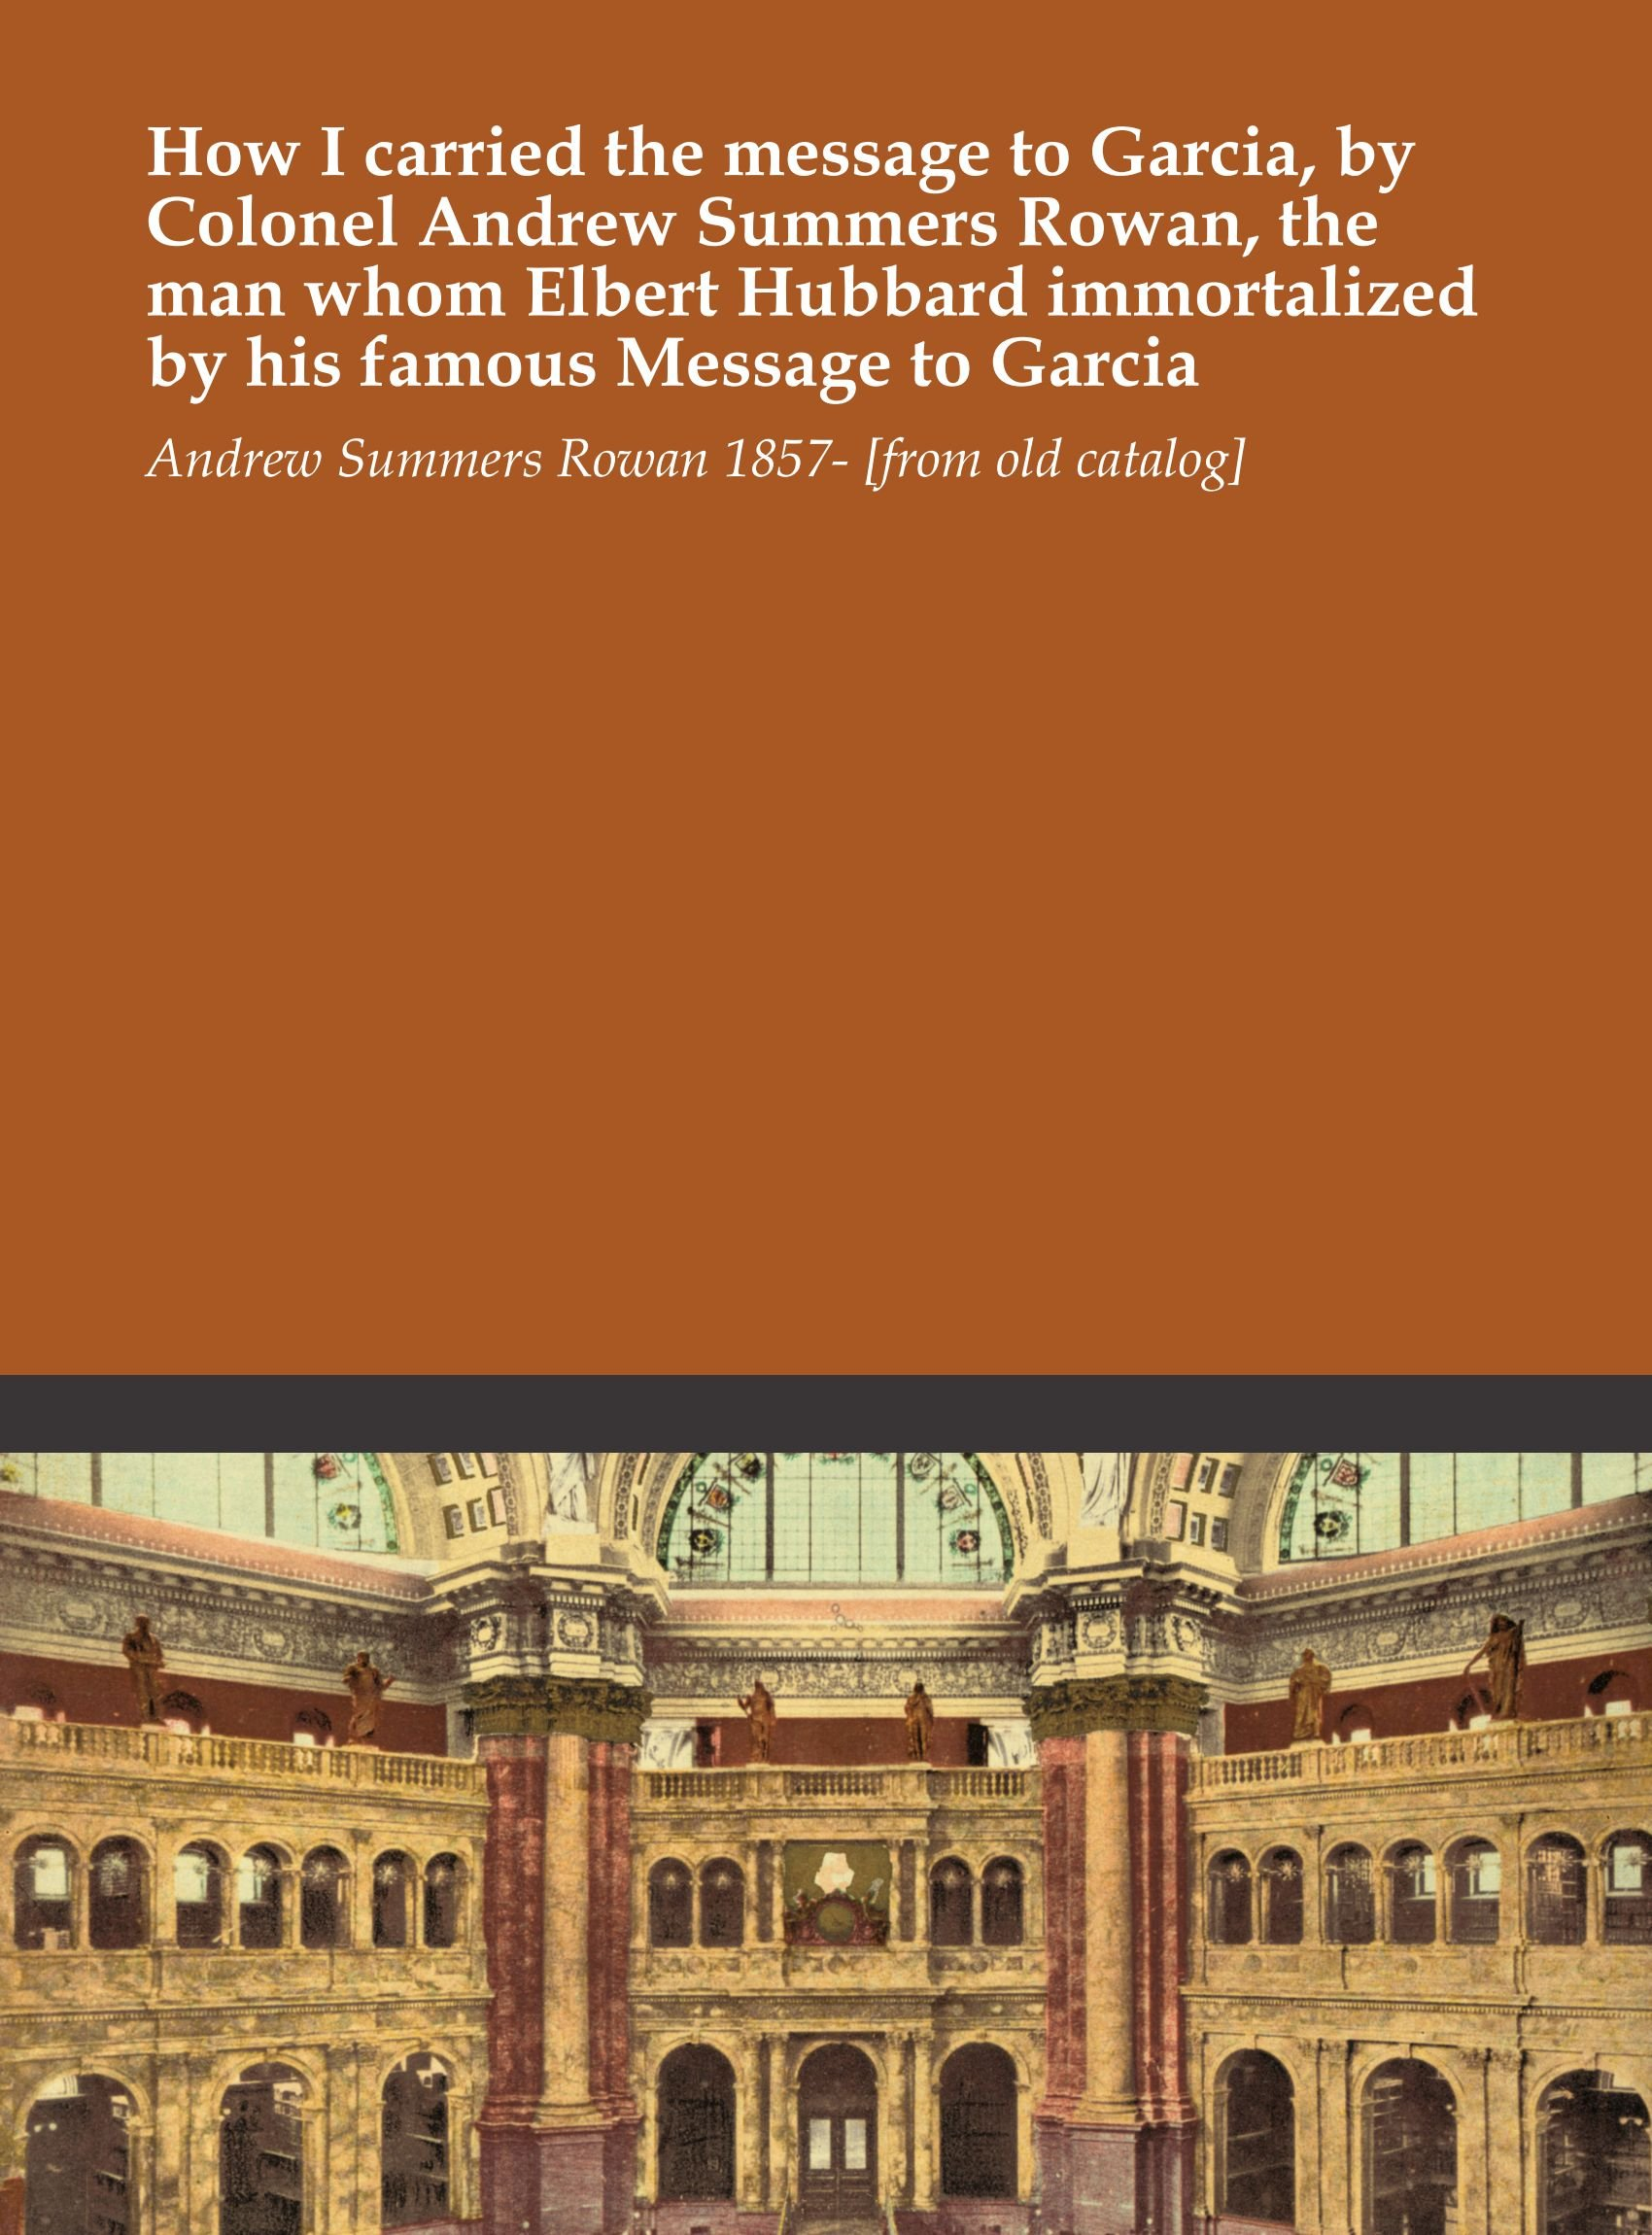 Download How I carried the message to Garcia, by Colonel Andrew Summers Rowan, the man whom Elbert Hubbard immortalized by his famous Message to Garcia ebook